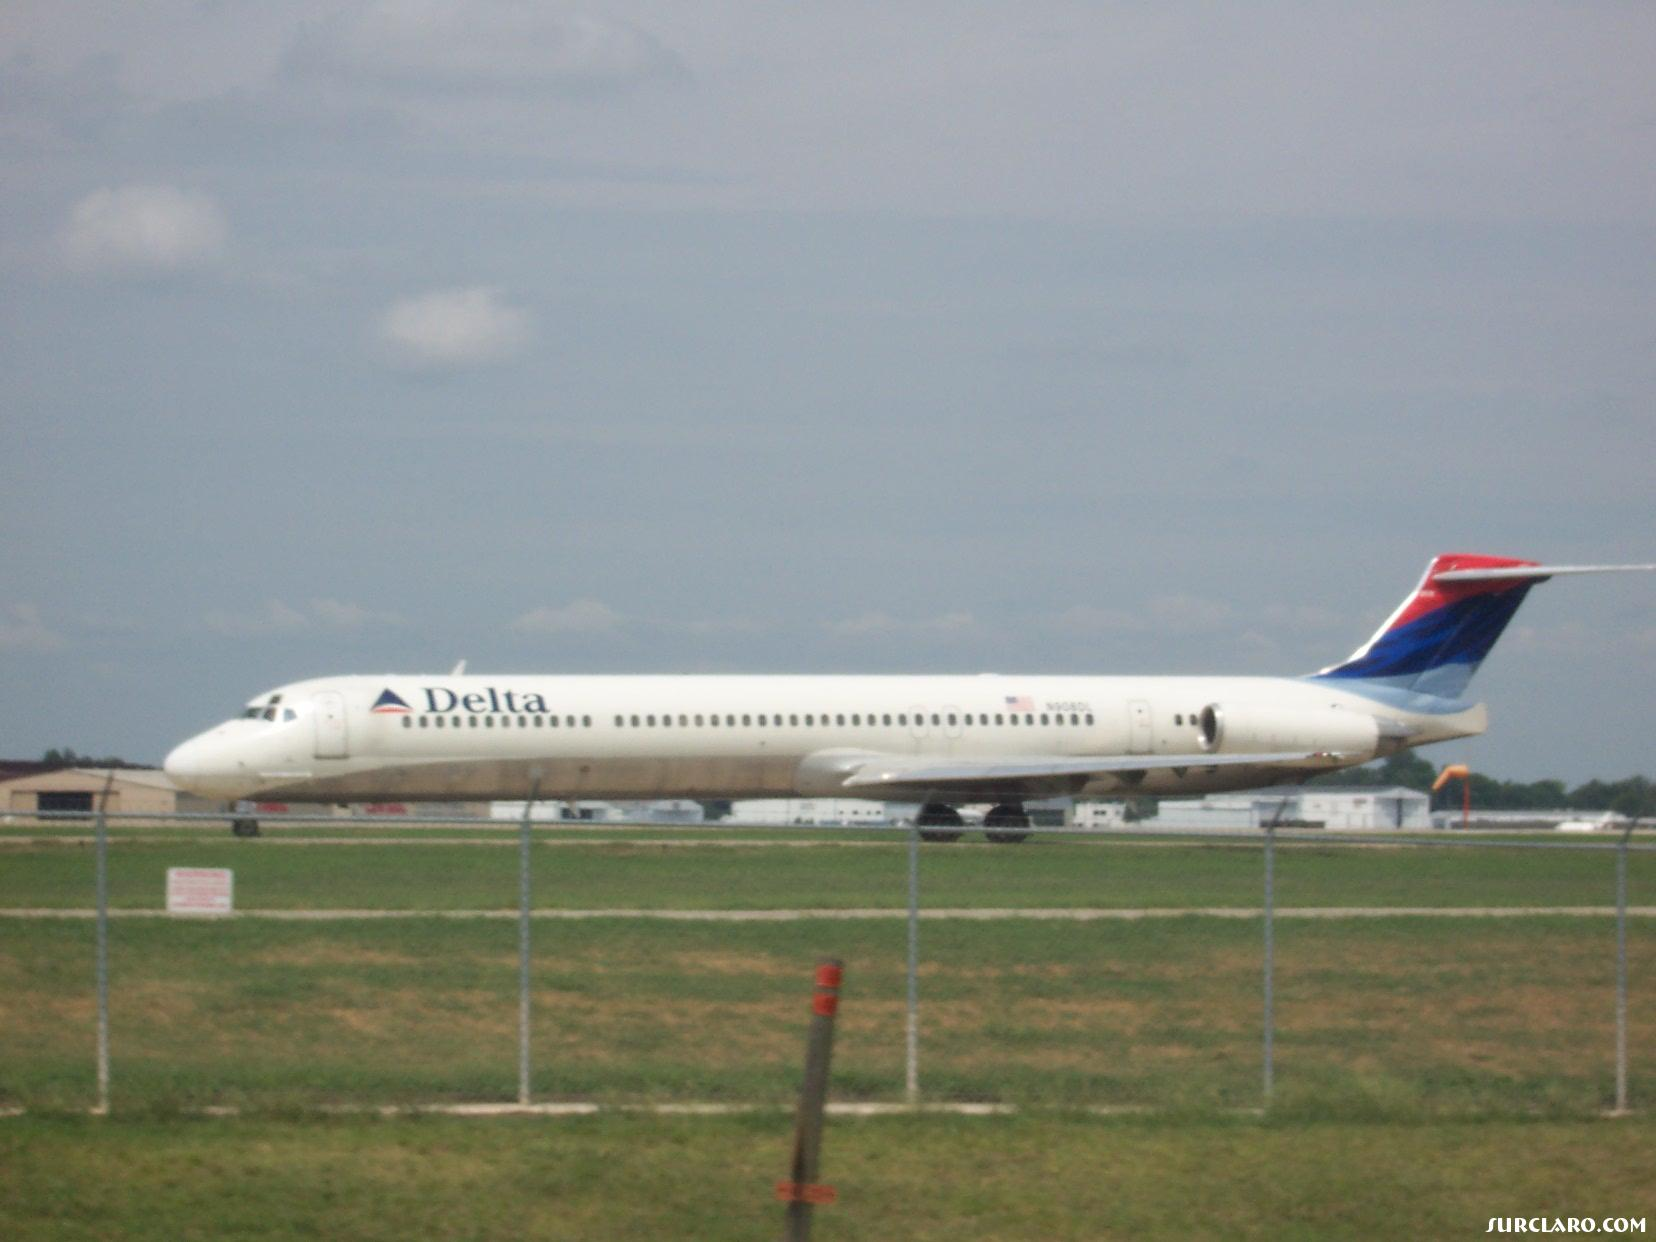 Haha i took this at my home town airport of little rock national - Photo 10243